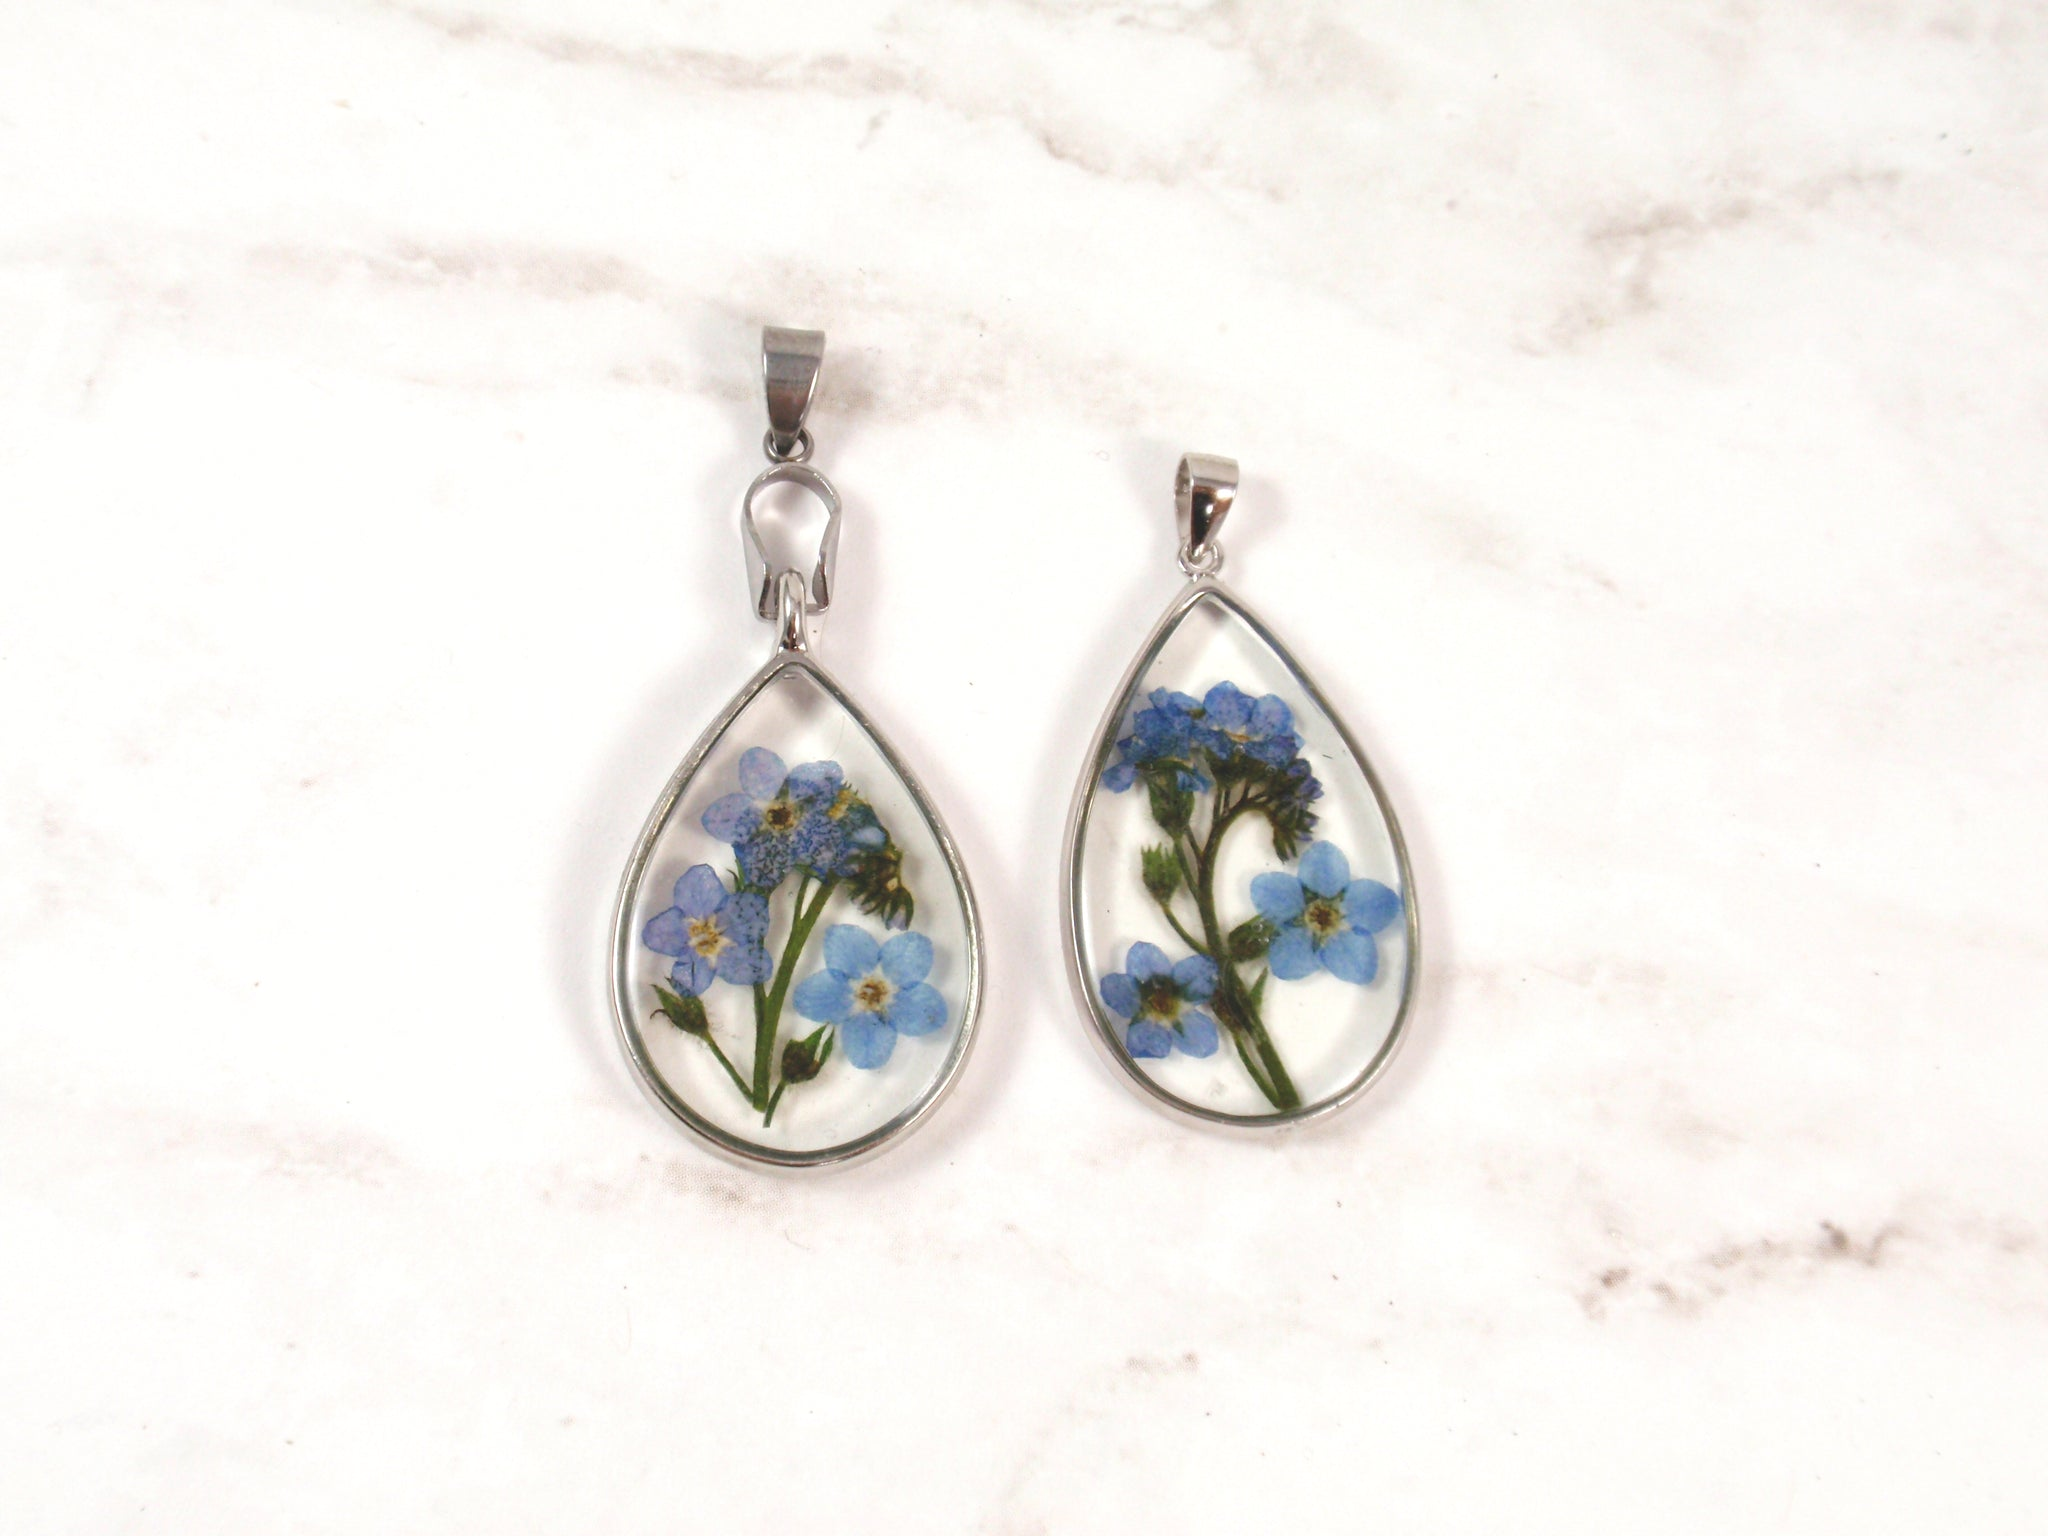 Forget me not flower necklace teardrop pendant